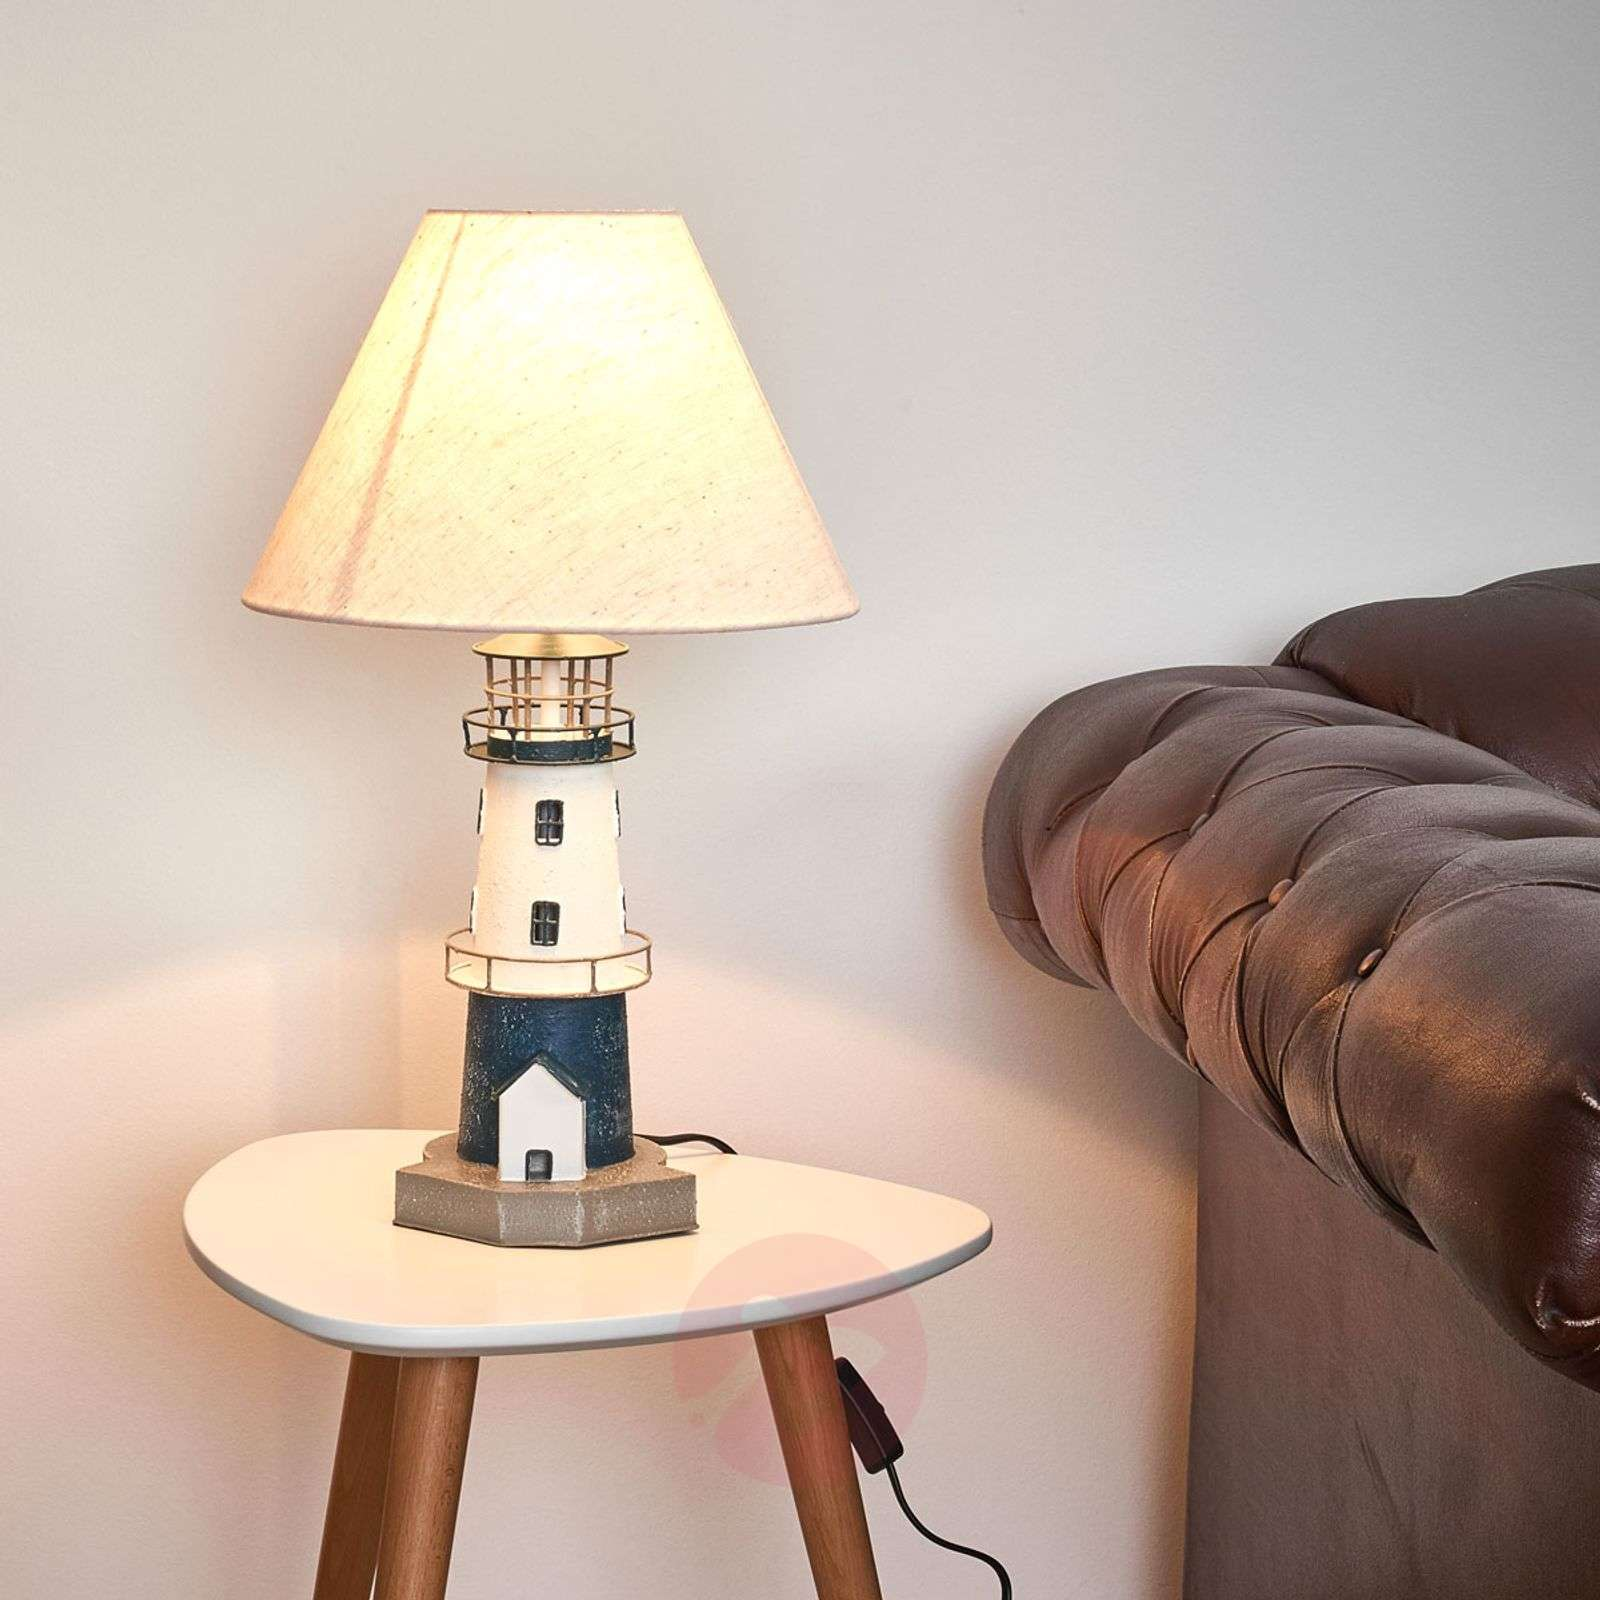 Blue-striped lighthouse table lamp Piet-8553058-01